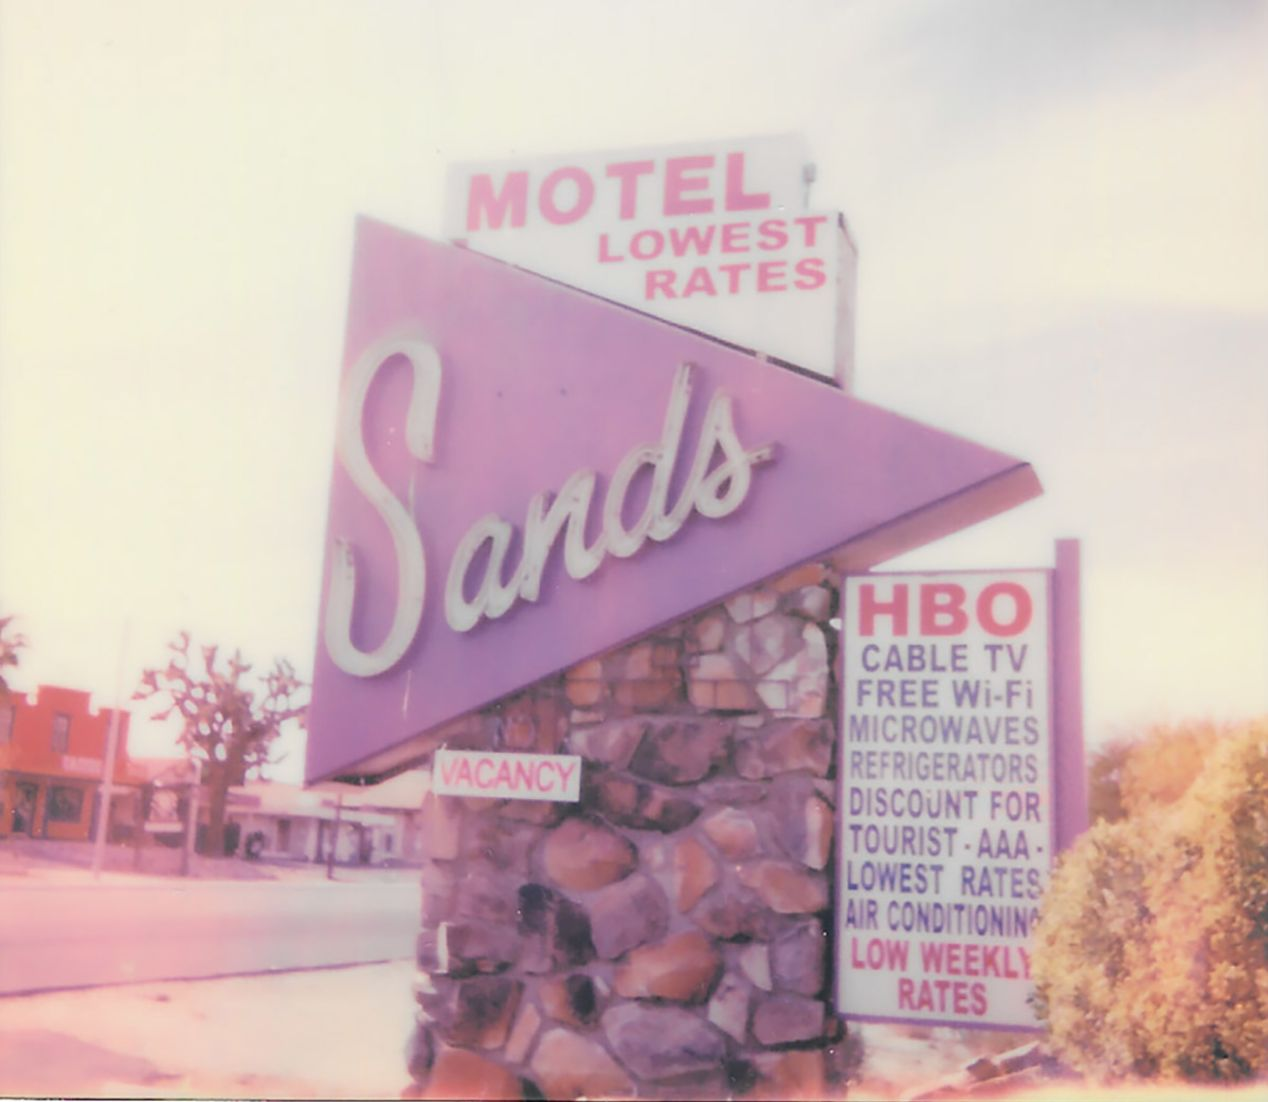 Sands Motel in Yucca Valley, California. Taken with a Polaroid 600 Camera and Polaroid Originals 600 Film